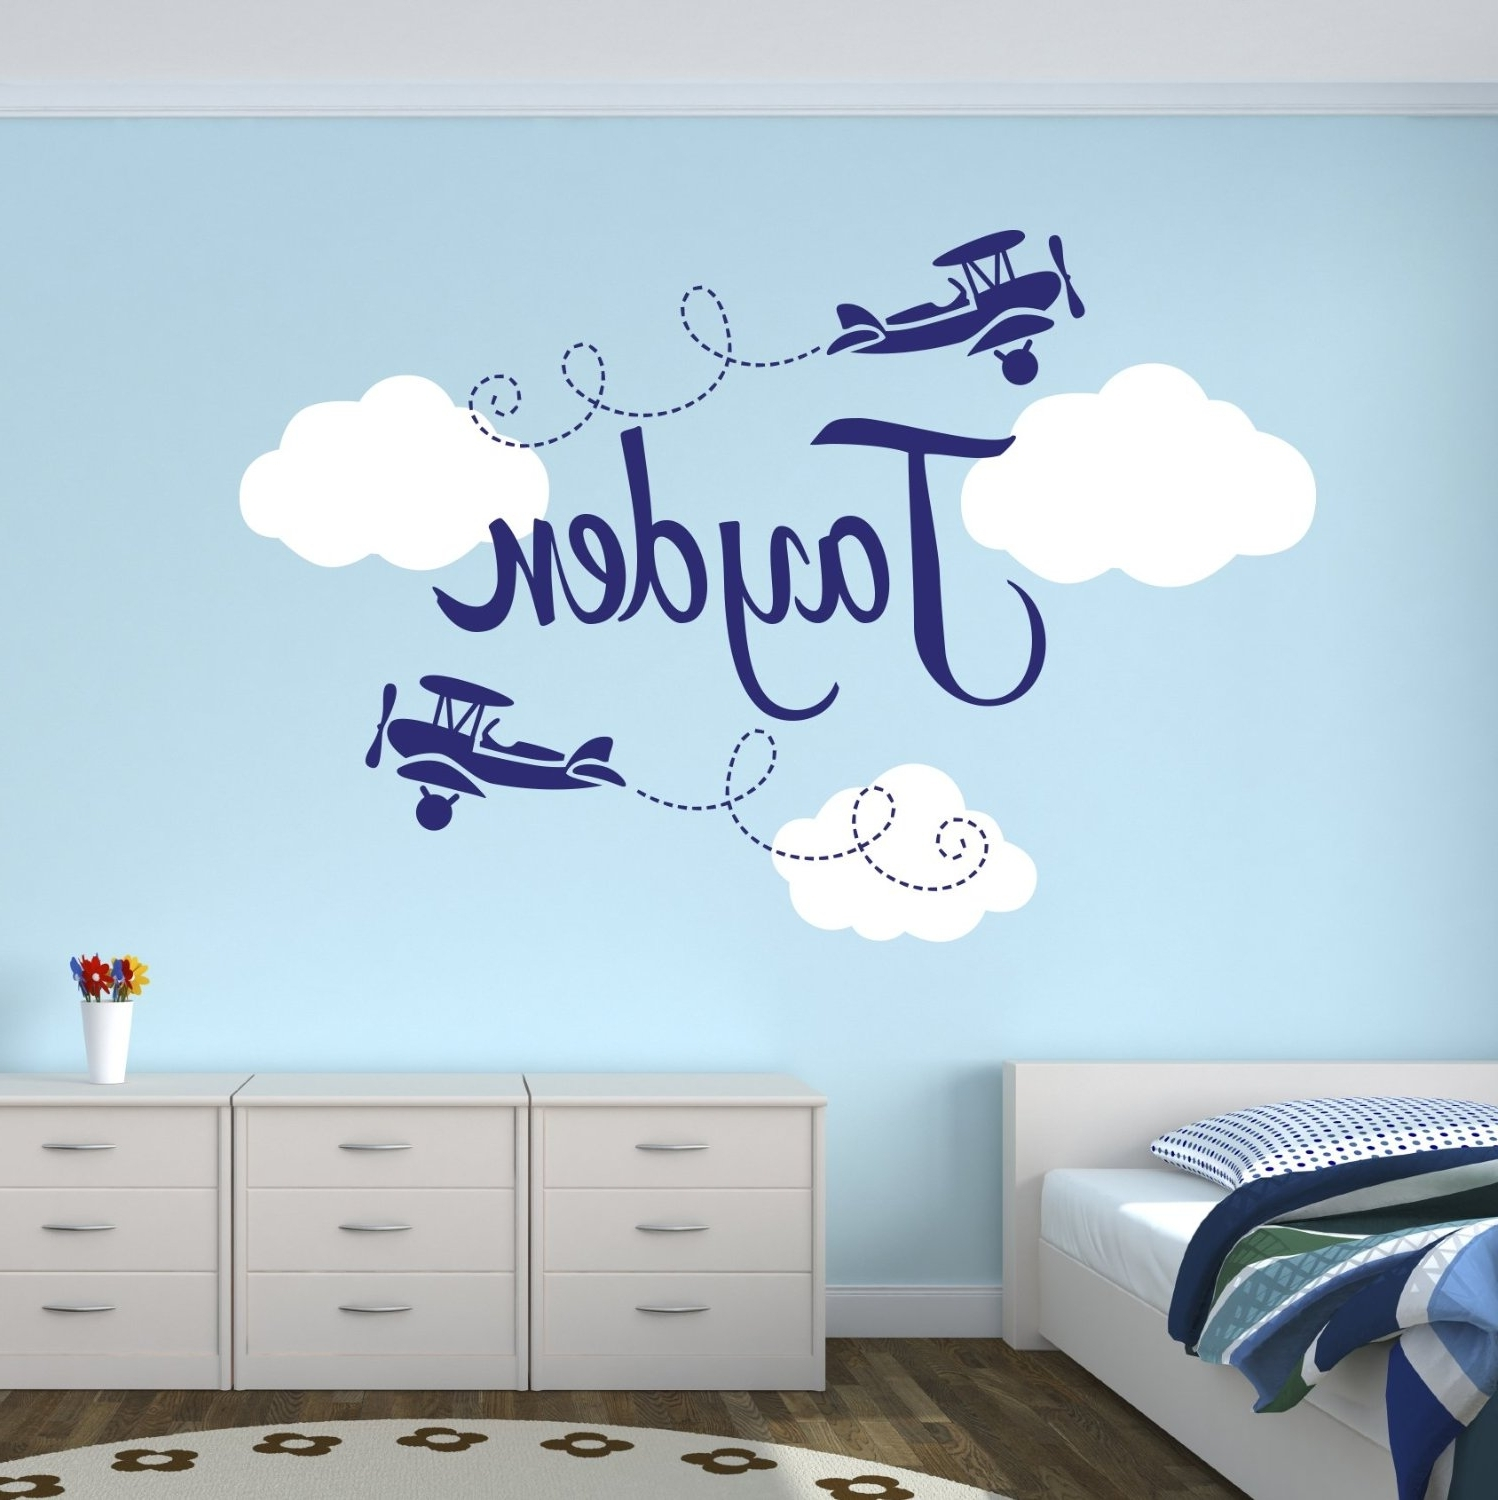 Personalized Airplane Name Clouds Decal Nursery Decor Home With Regard To Fashionable Wall Art Stickers For Childrens Rooms (View 8 of 15)